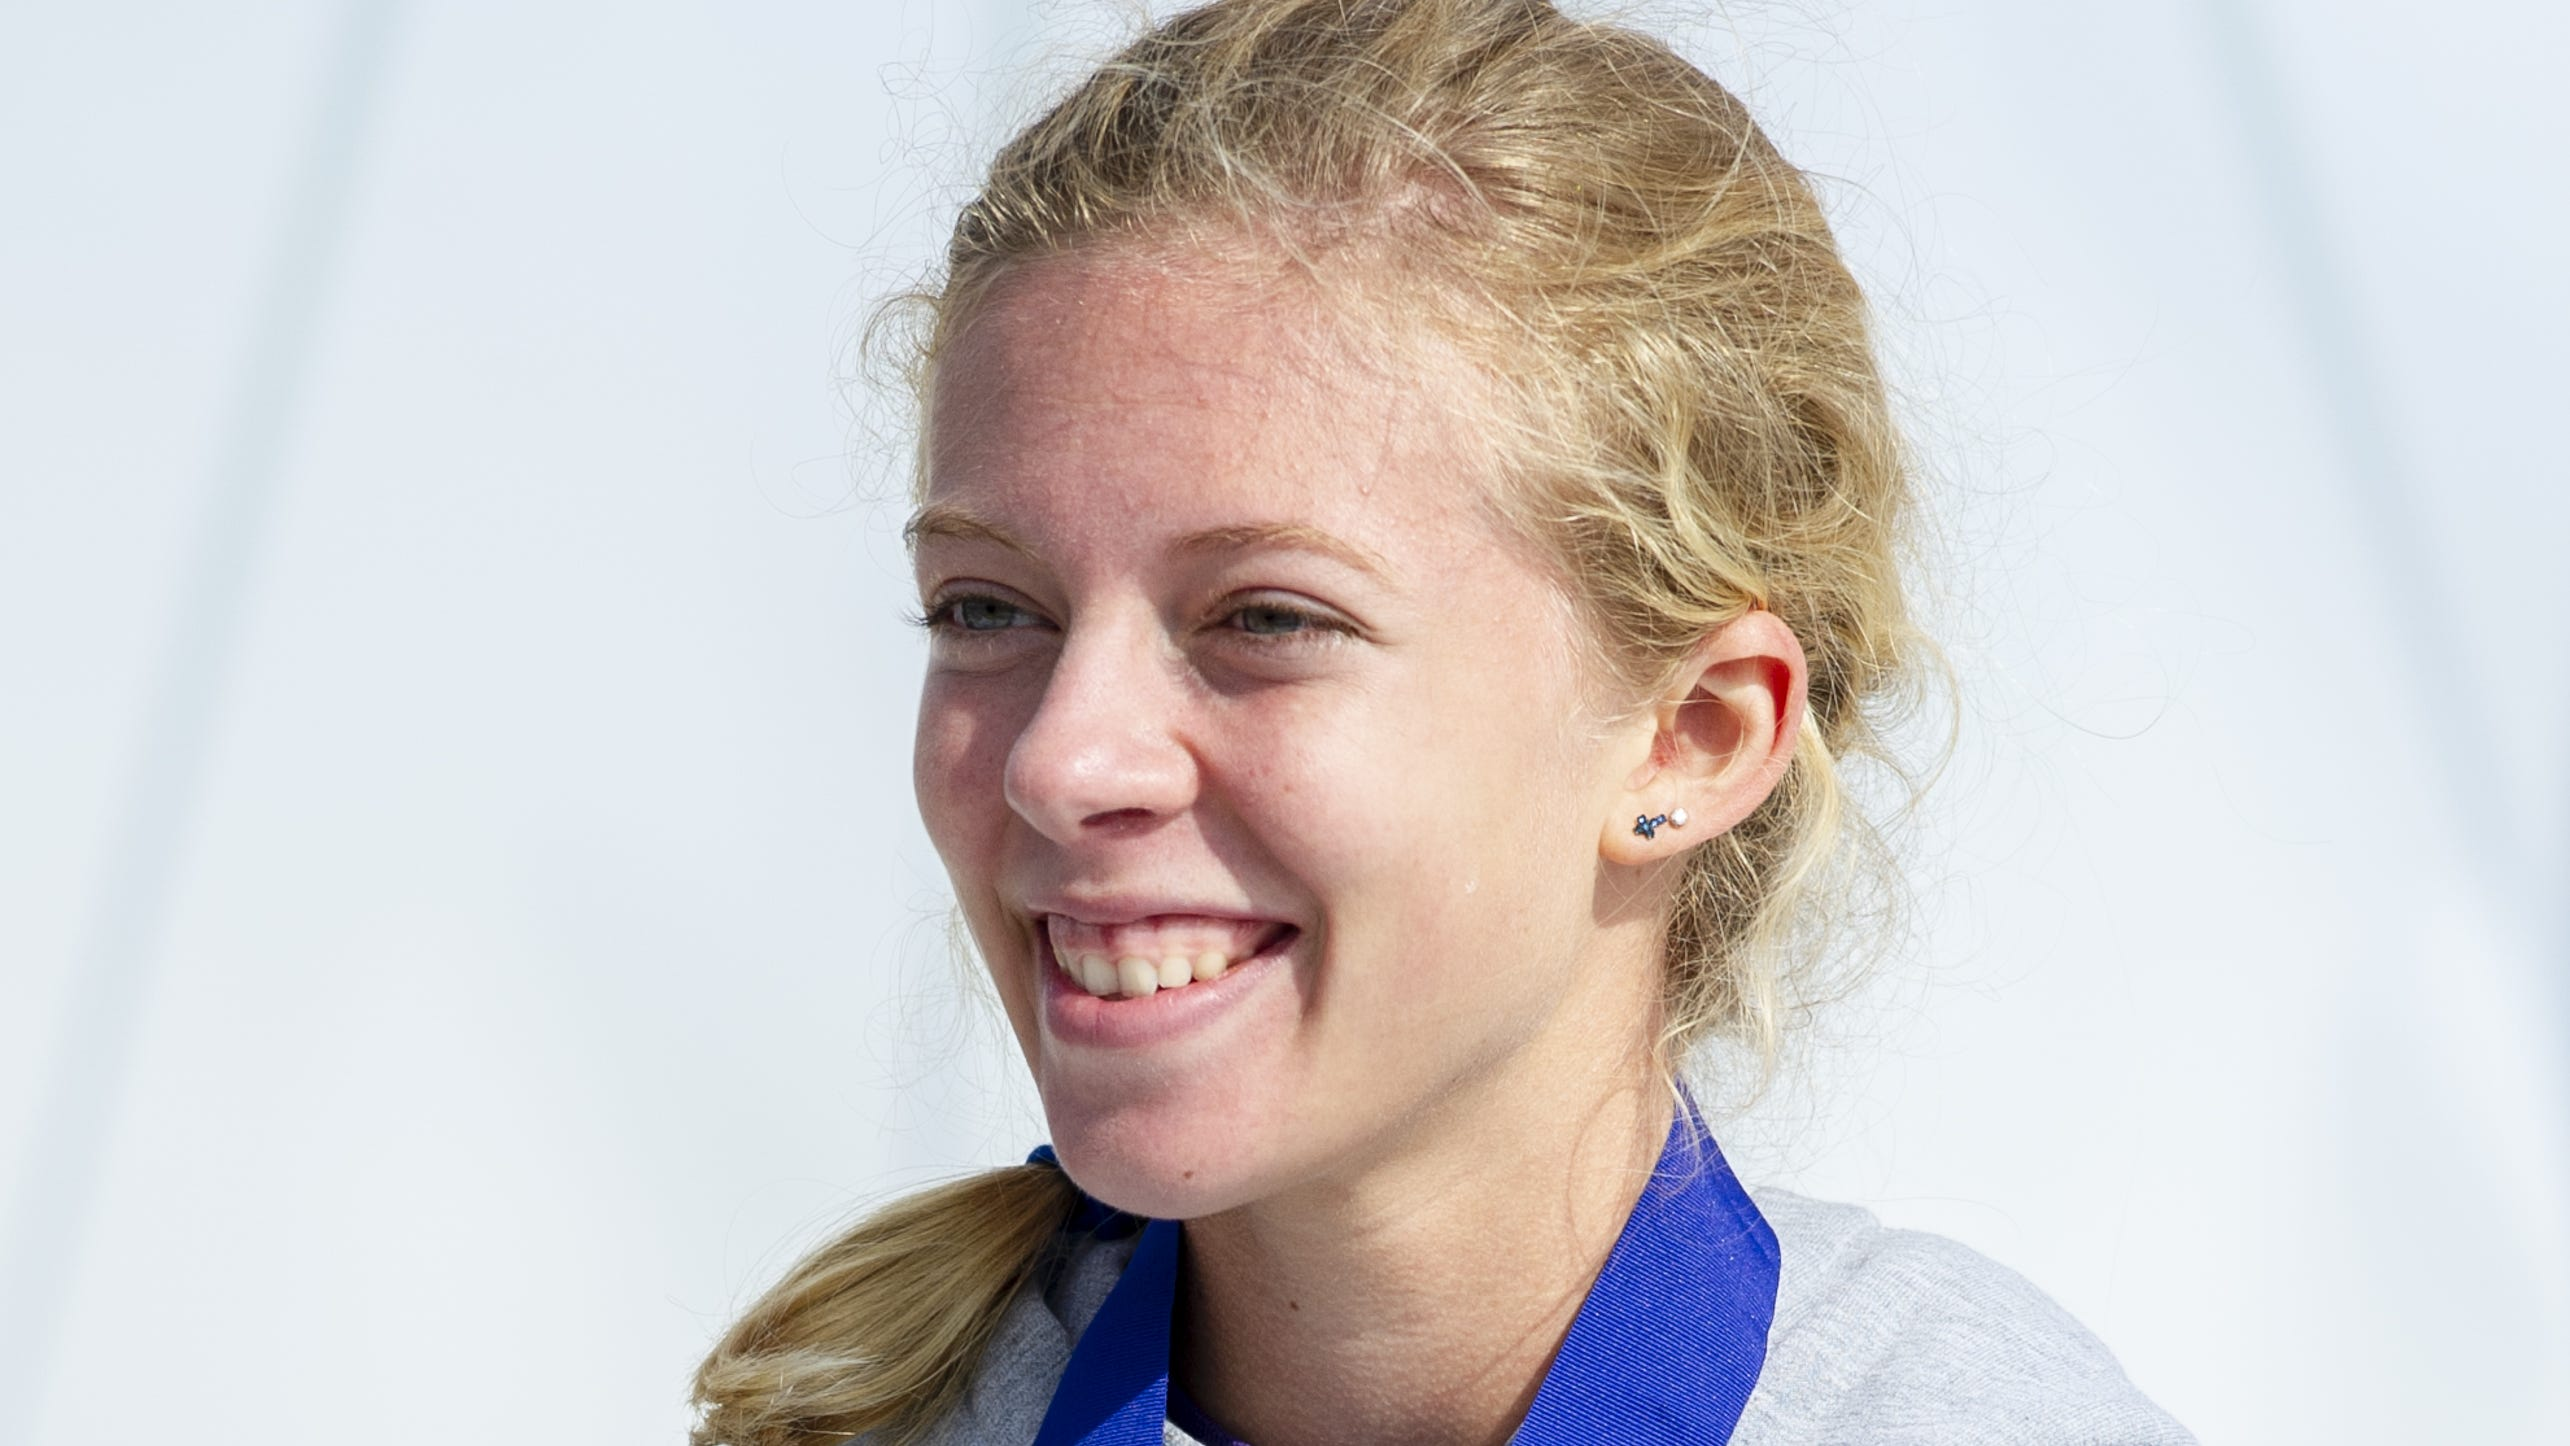 Greencastle High School runner Emma Wilson smiles...